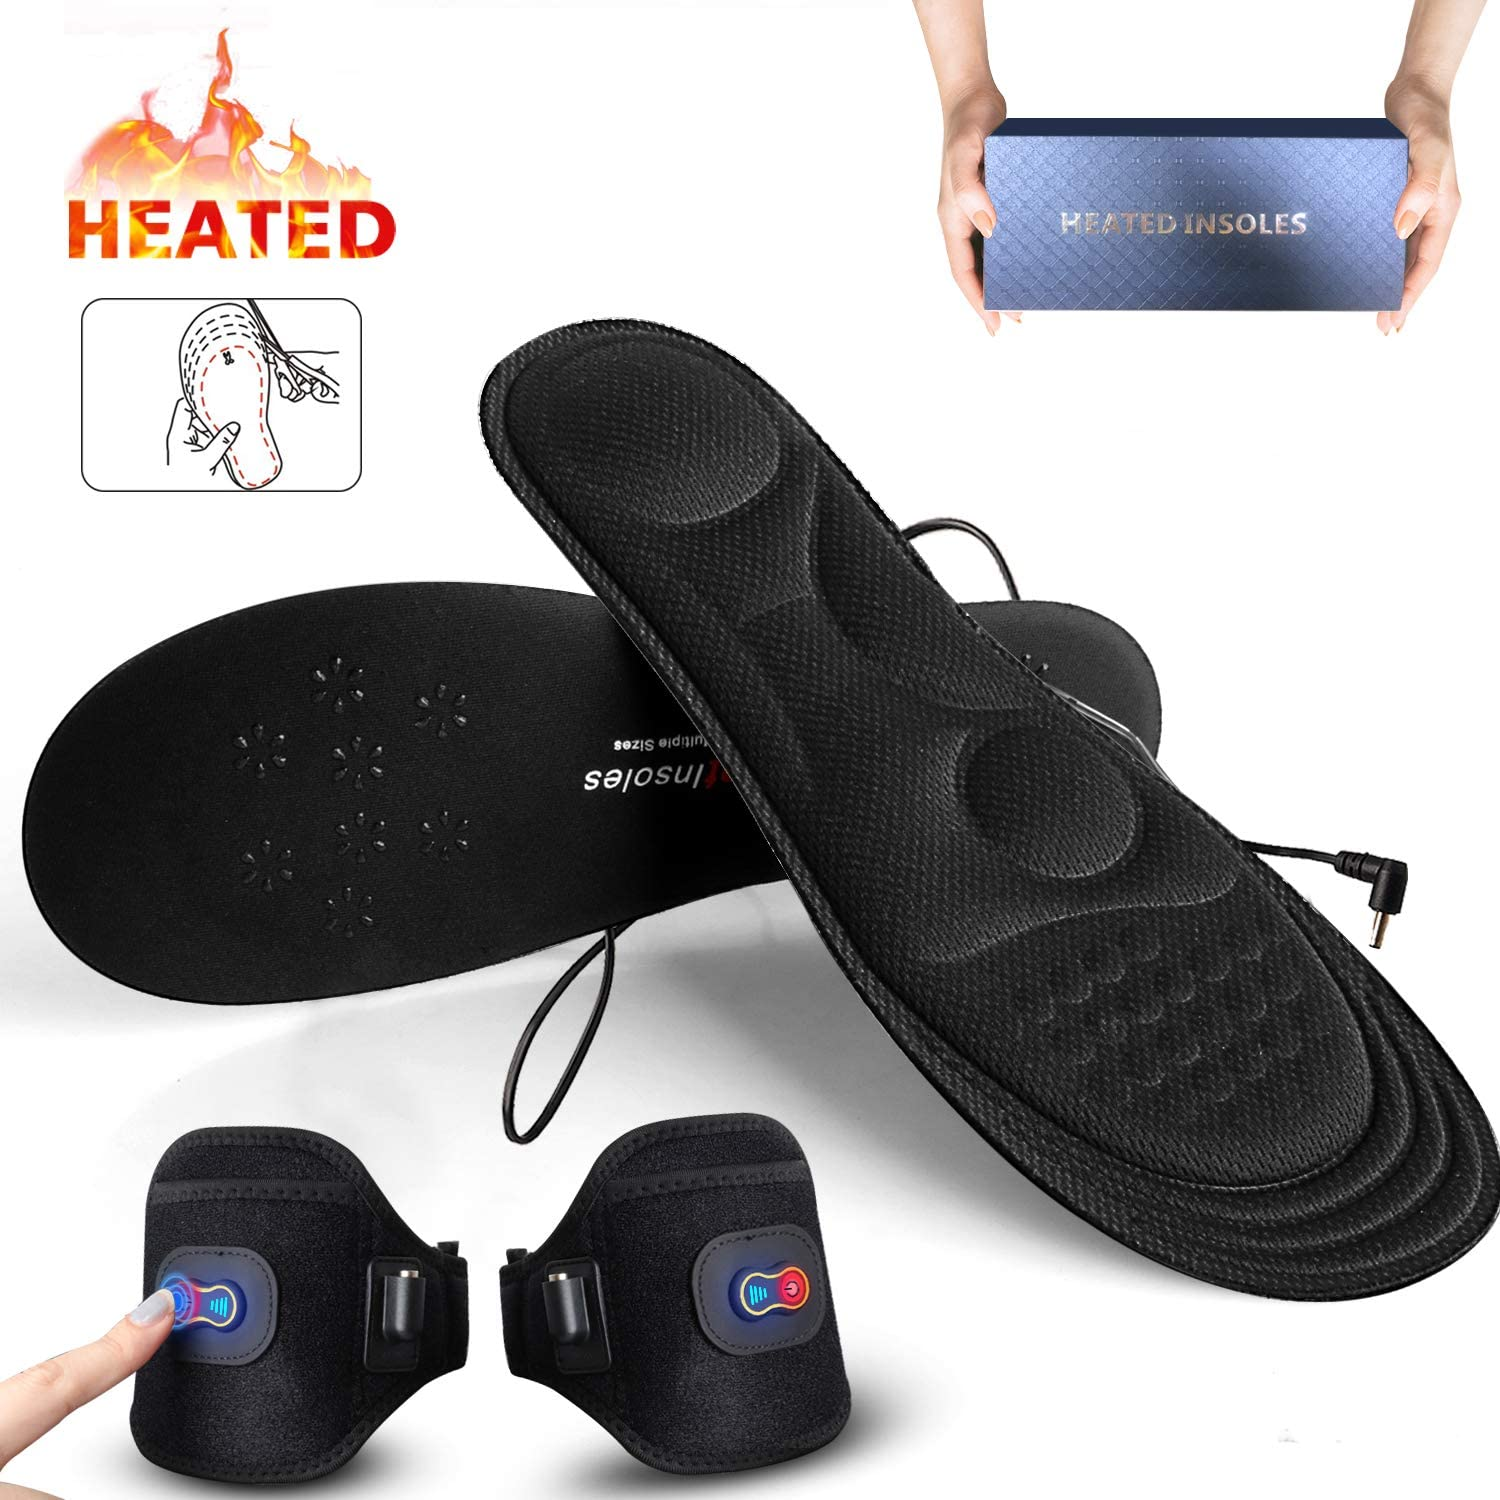 Bial Feet Warmers For Hunting: